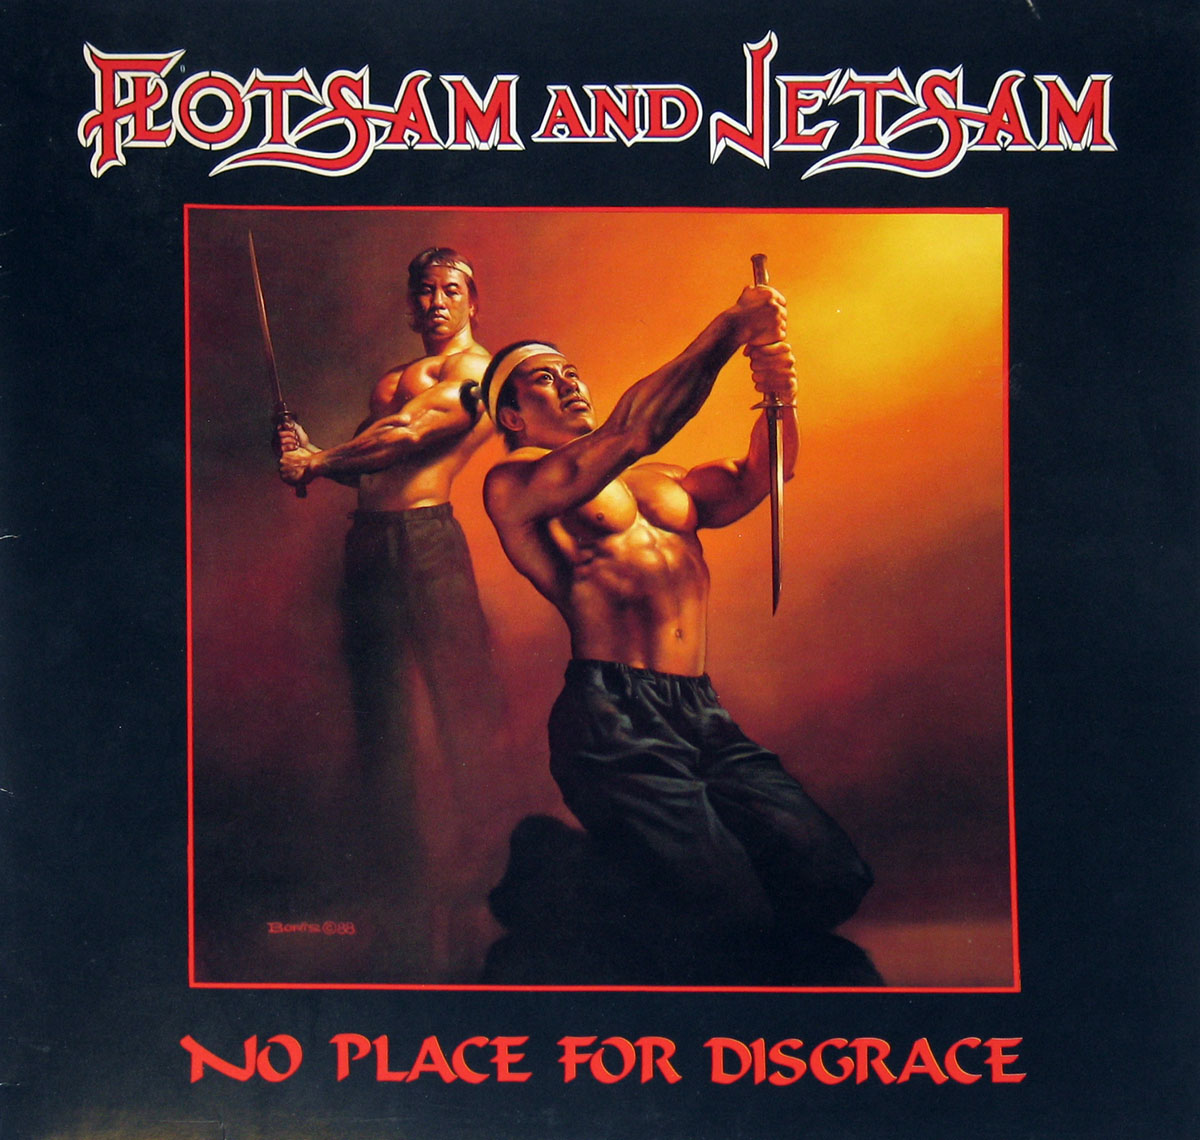 High Resolution Photo #1 FLOTSAM and JETSAM No Place for Disgrace Netherlands Vinyl Record